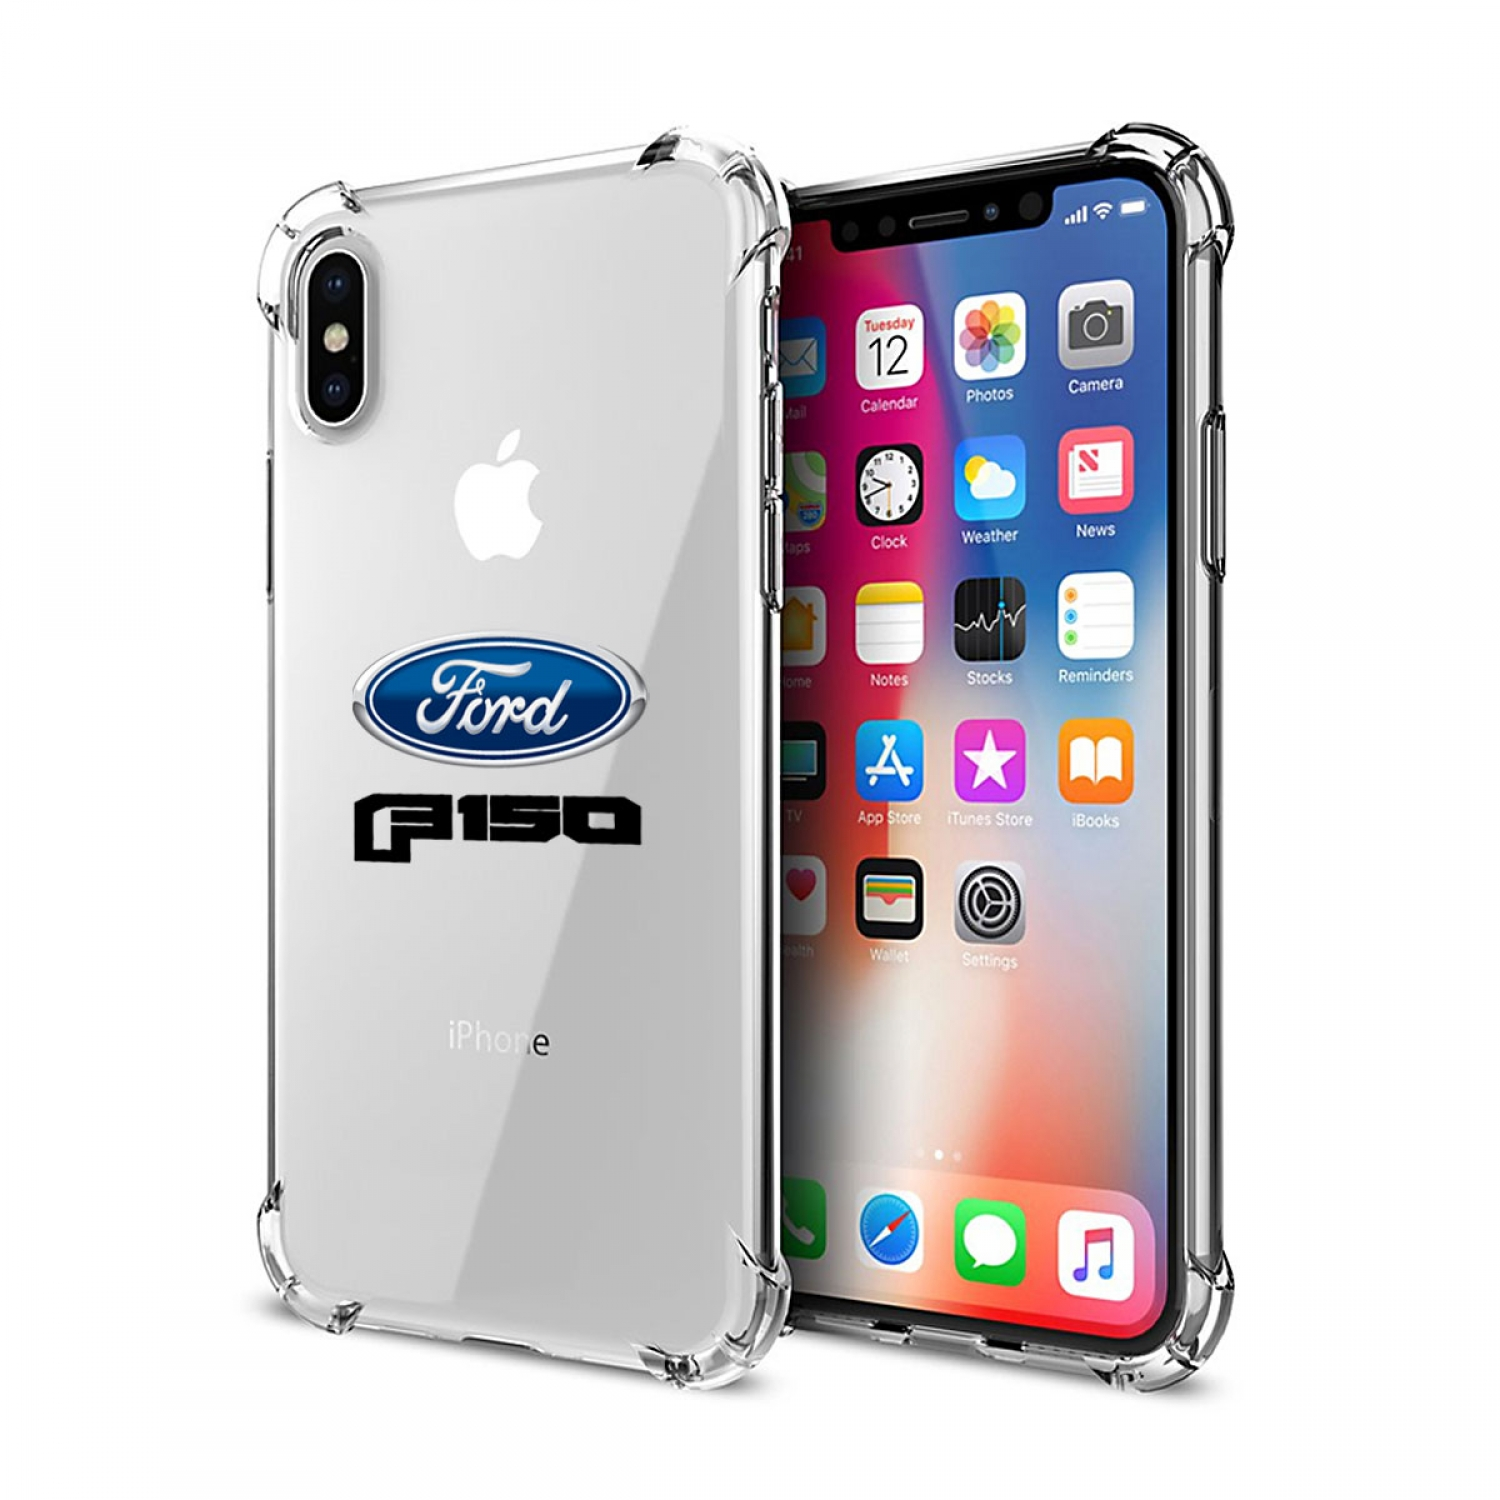 Ford F150 2015 iPhone X Clear TPU Shockproof Cell Phone Case